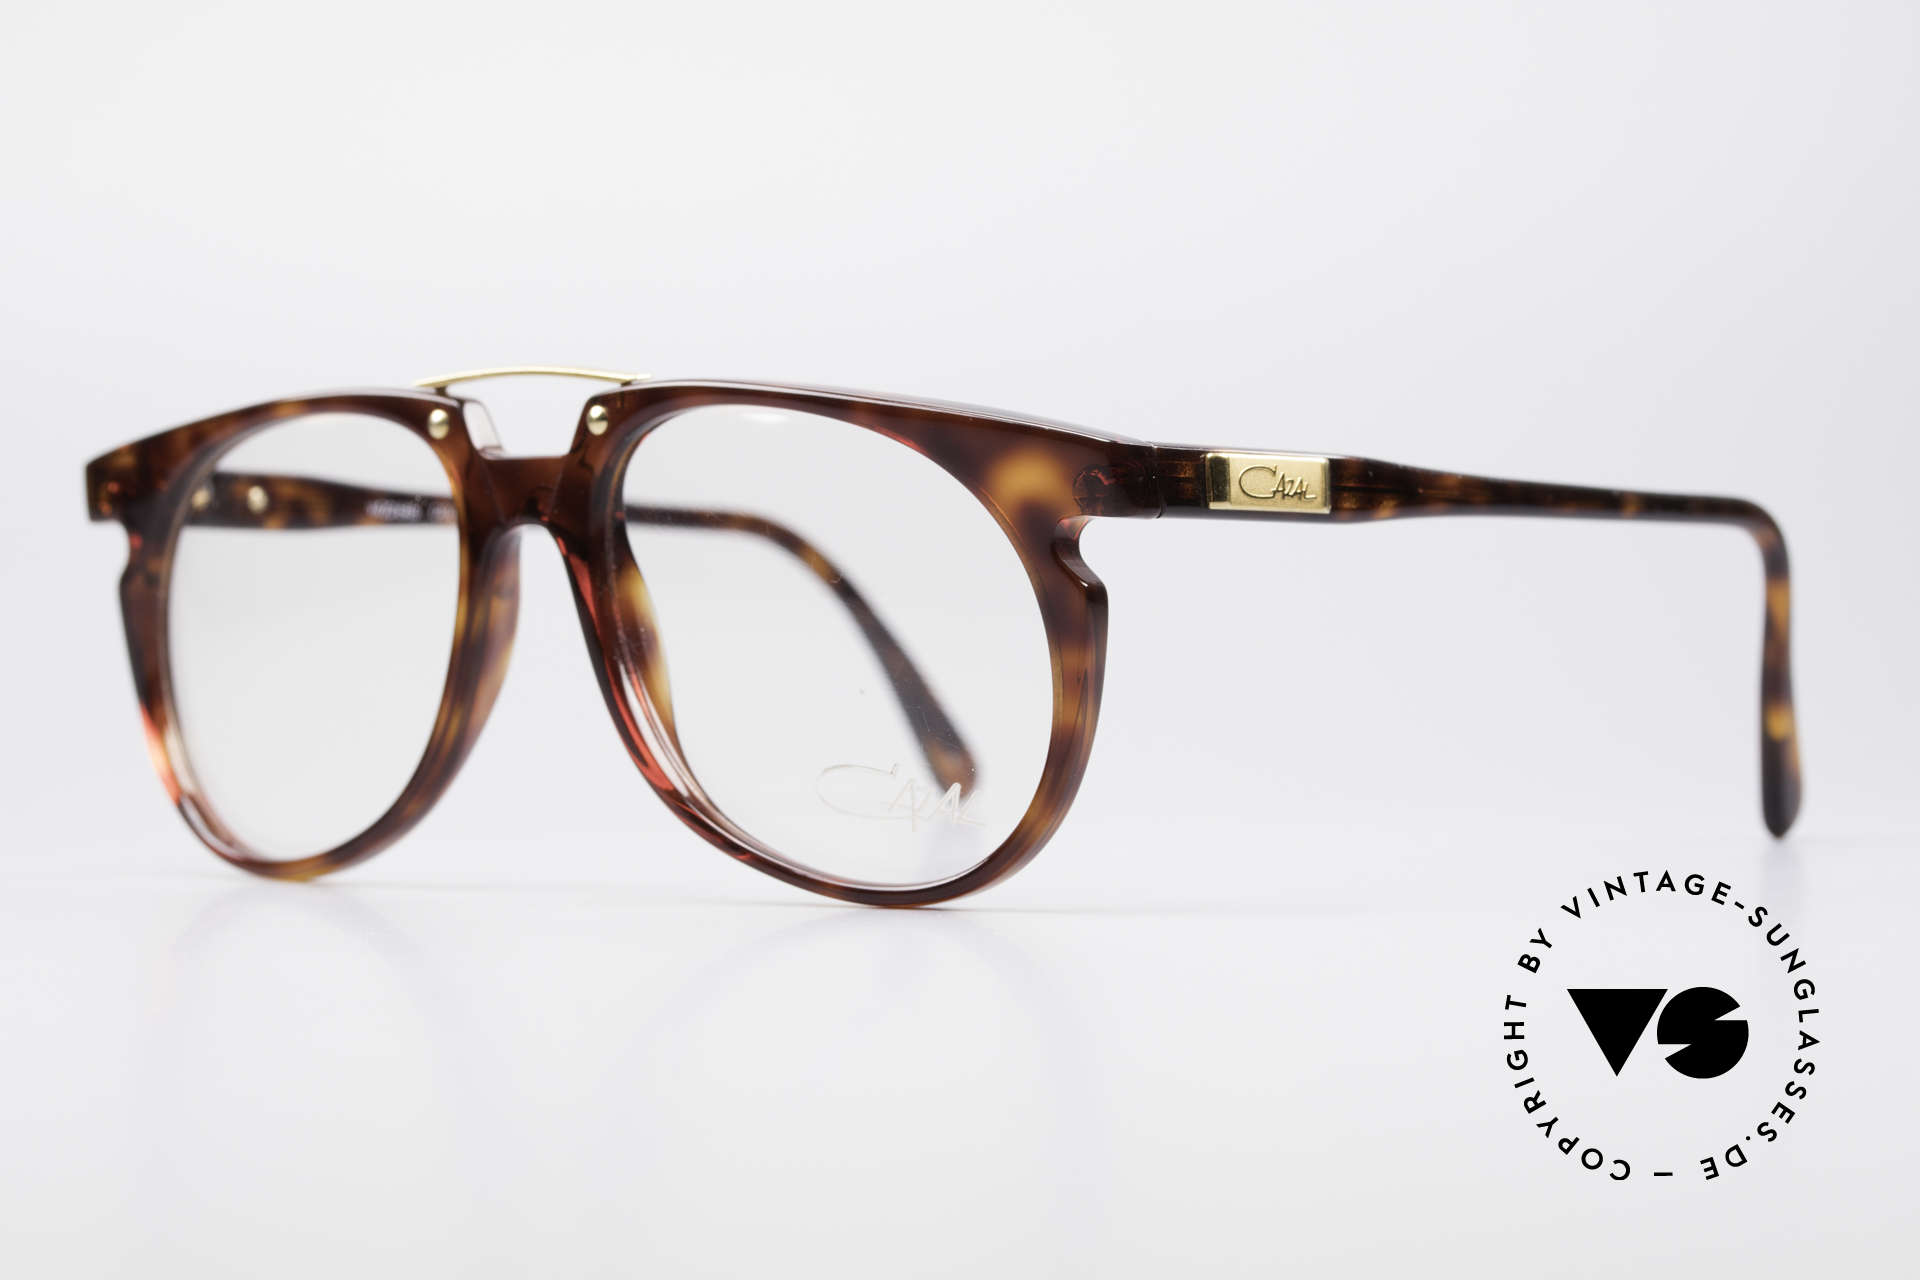 Cazal 645 Extraordinary Vintage Frame, great frame color / pattern (brown tortoise / gold), Made for Men